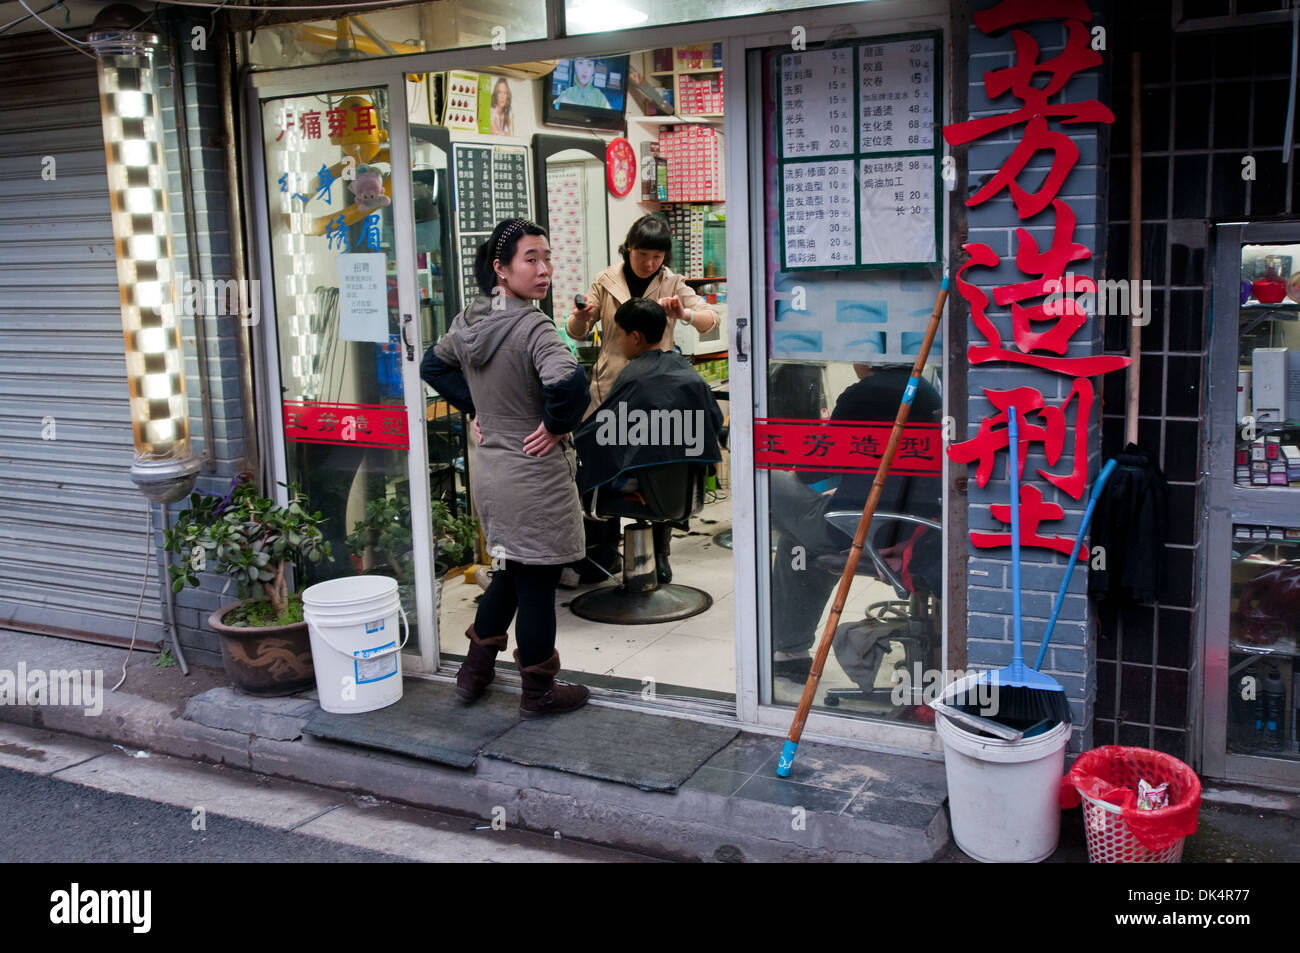 hairdresser salon in Old City of Shanghai (Nanshi) in China - Stock Image